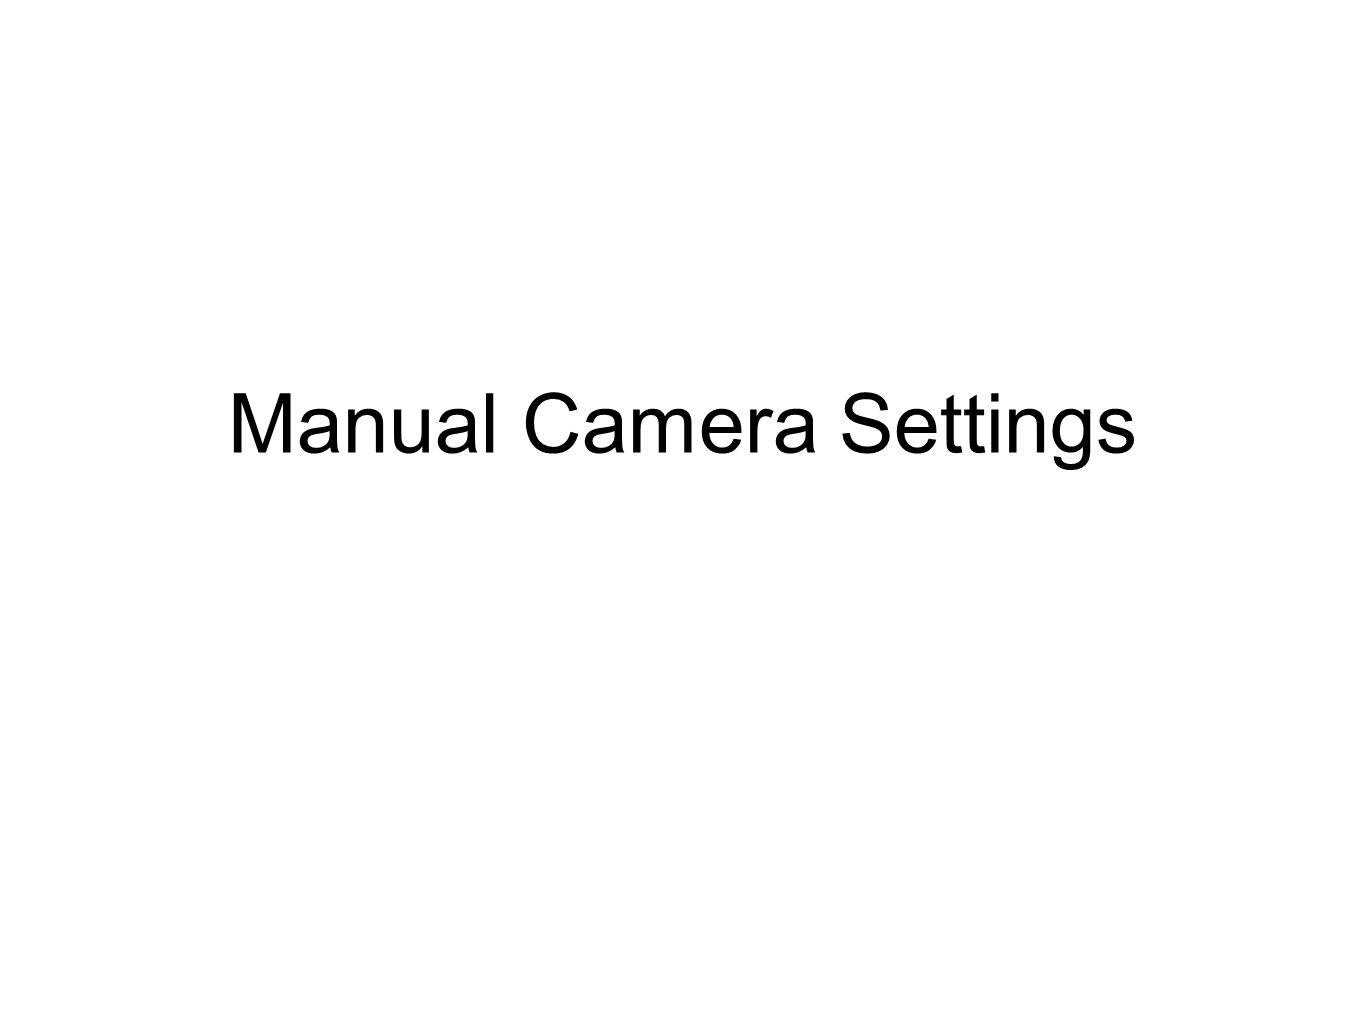 Manual Camera Settings